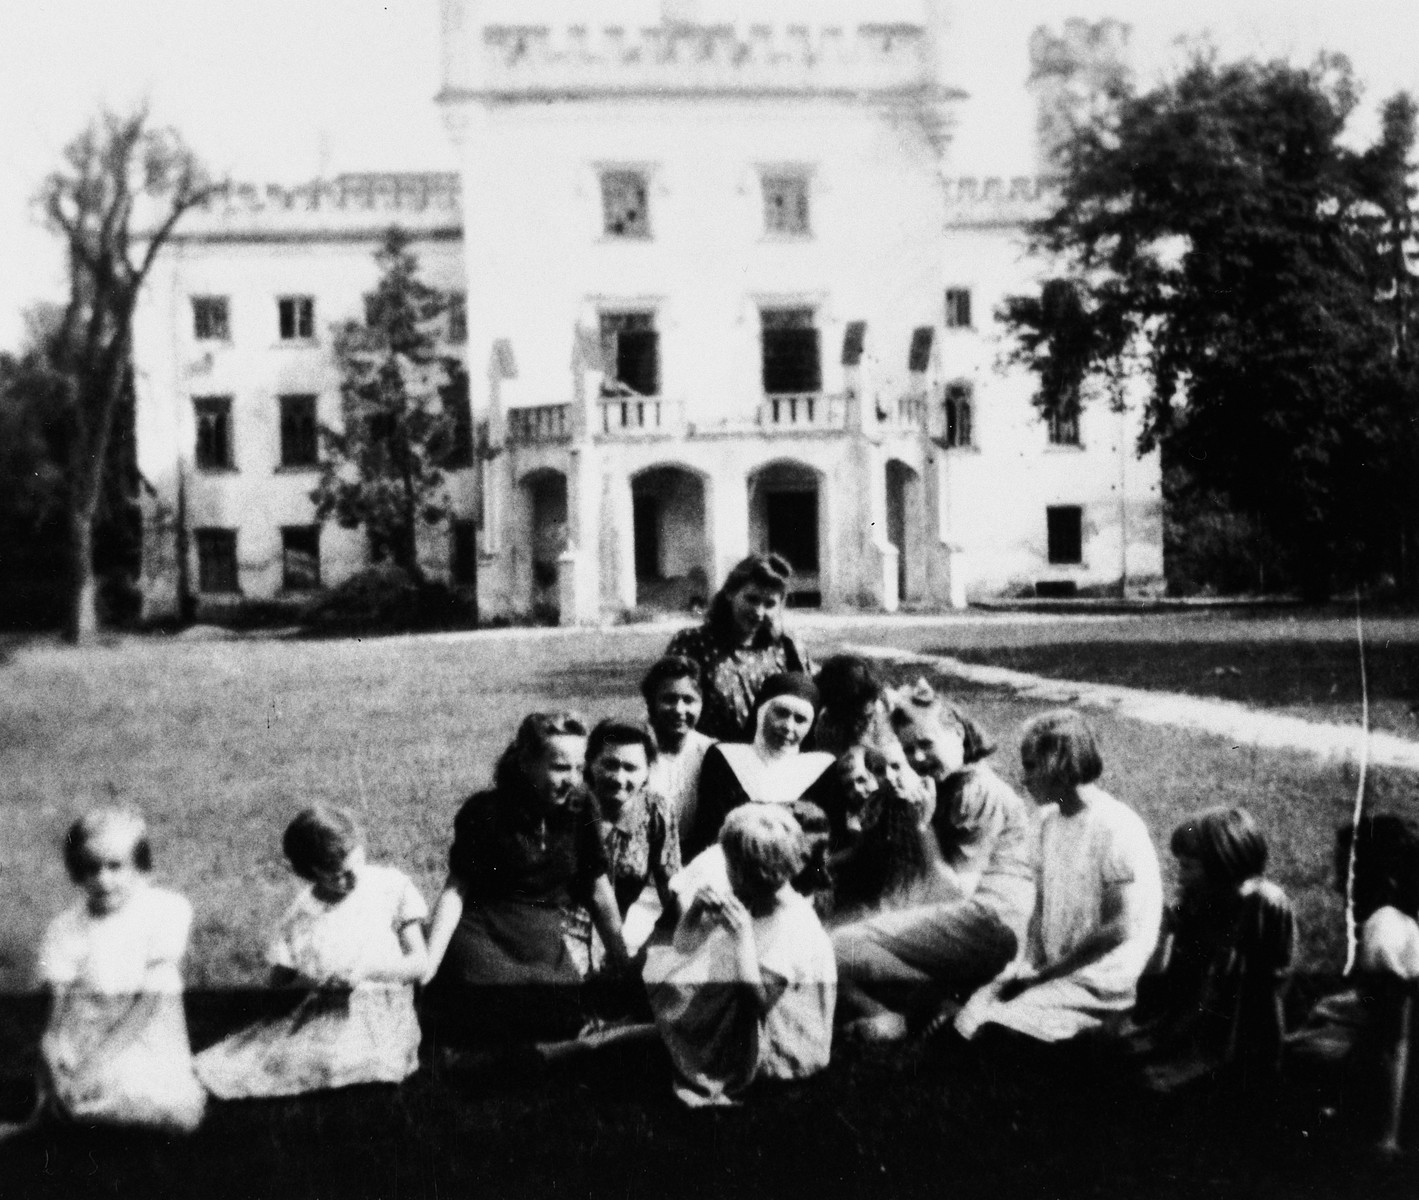 Sister Alma sits on the grass of a convent school in Stara Wies surrounded by four women and six small girls.  Halina Wroncberg, living under the assumed name of Halina Chmielewska, is second from the left.  German officers occupied the left wing of the building.